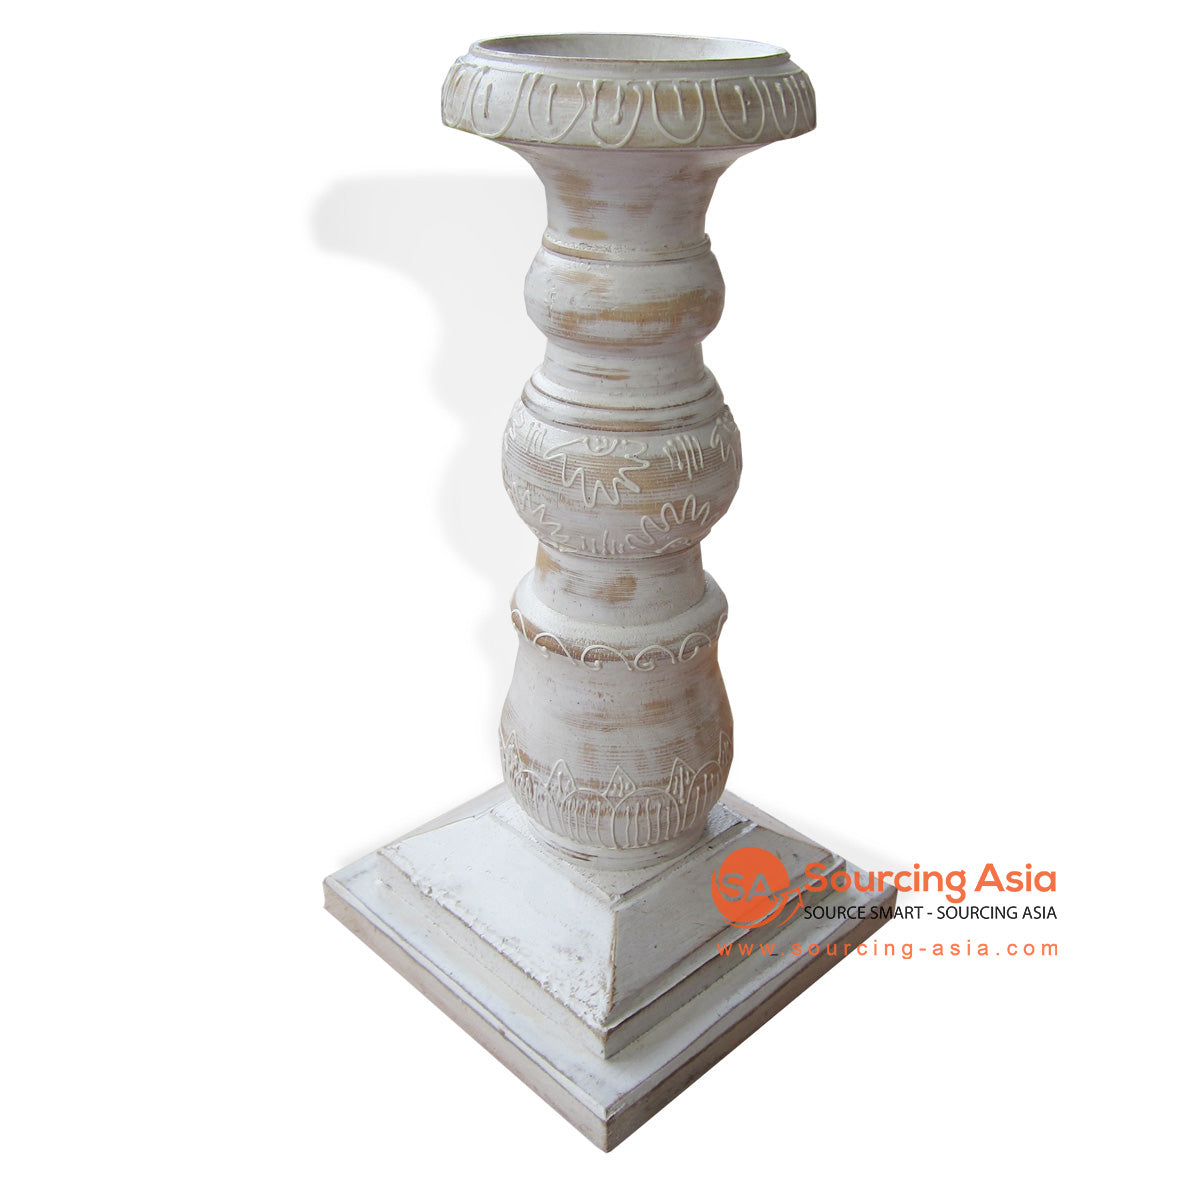 CHWD053-30 CANDLE HOLDER